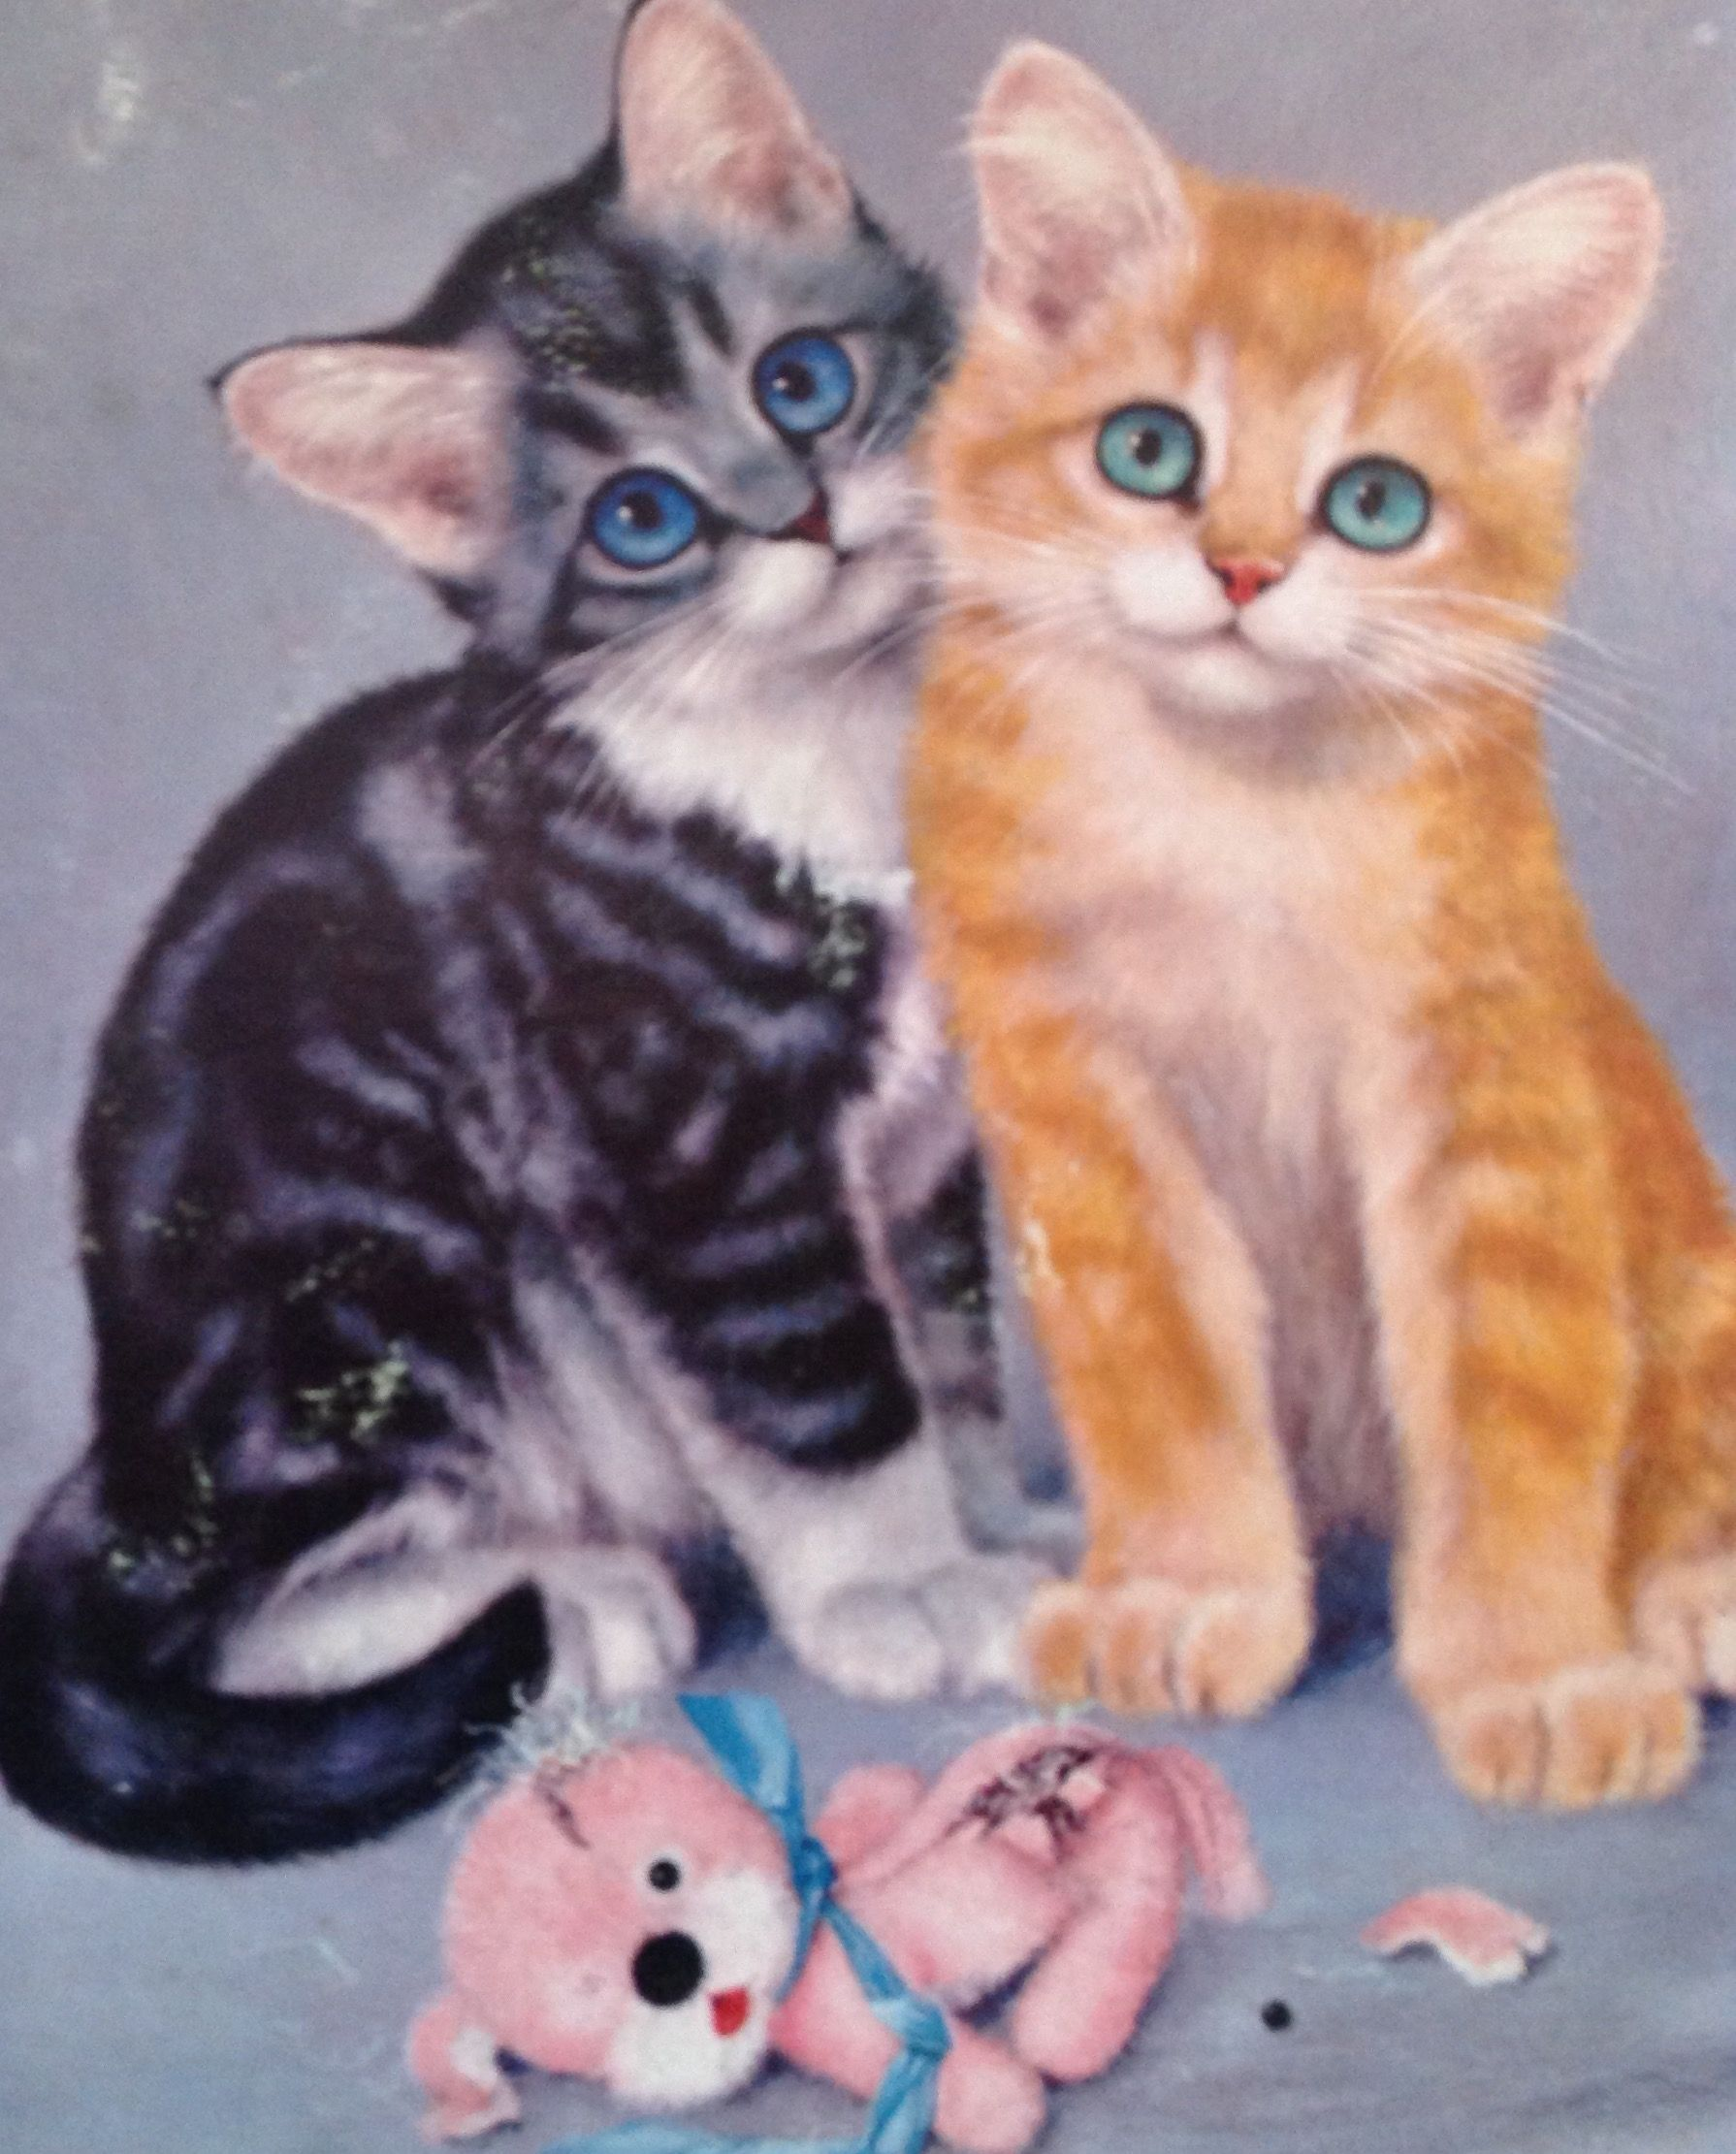 two little kittens looking guilty vintage print found at salvation army